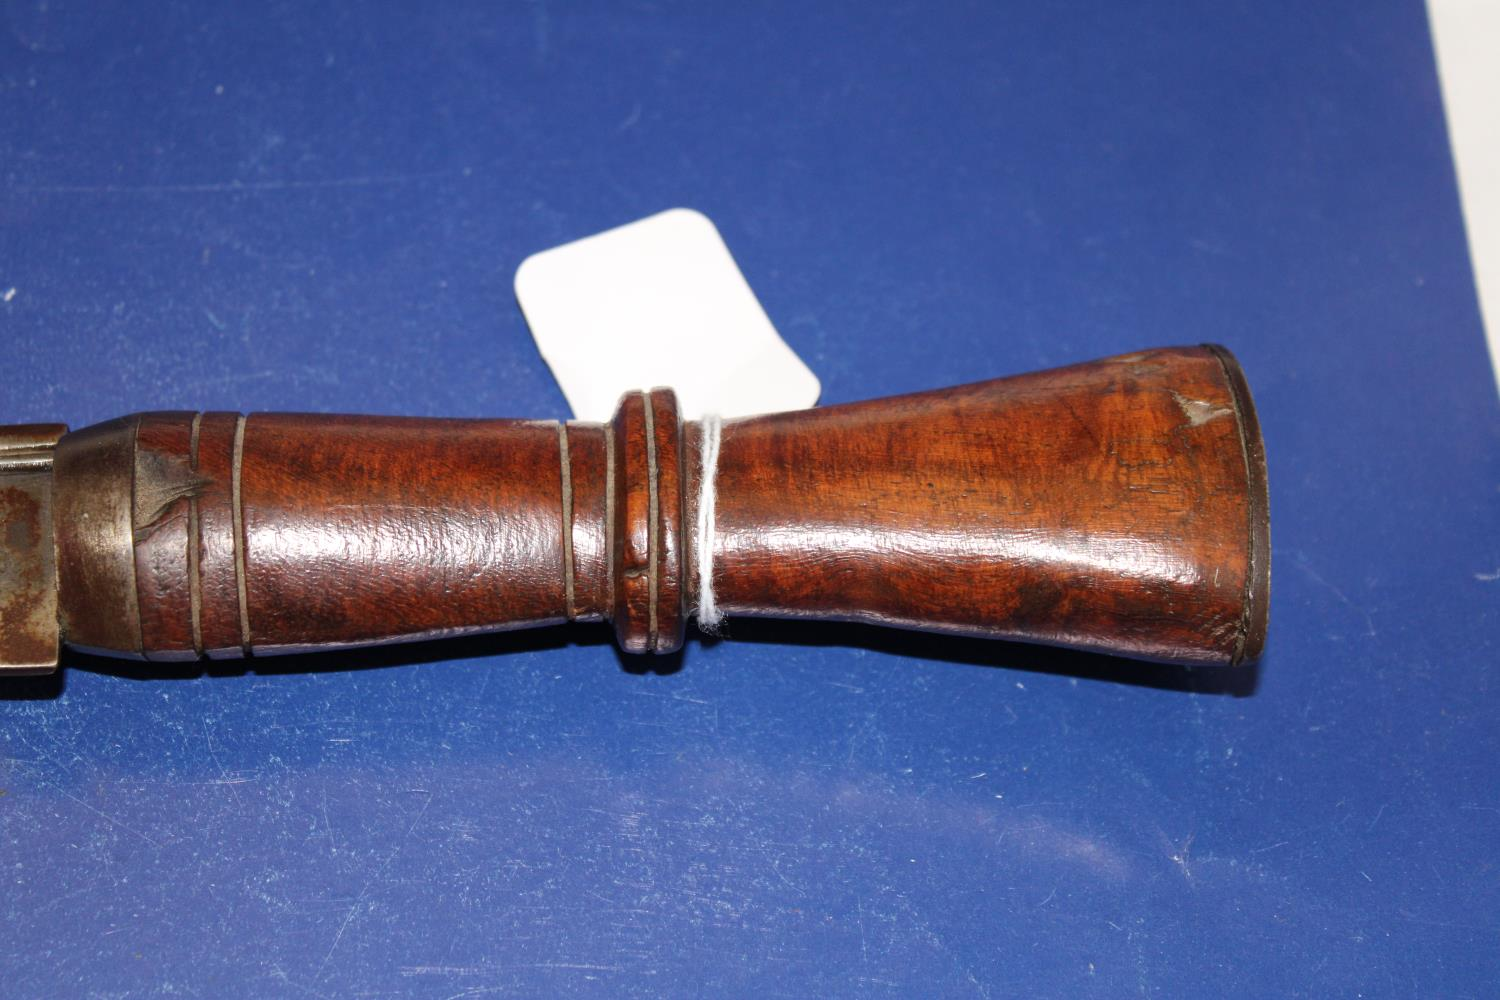 A large Kukri Gurka style knife with a wooden handle in a leather sheath Length of knife 46cm - Image 3 of 5